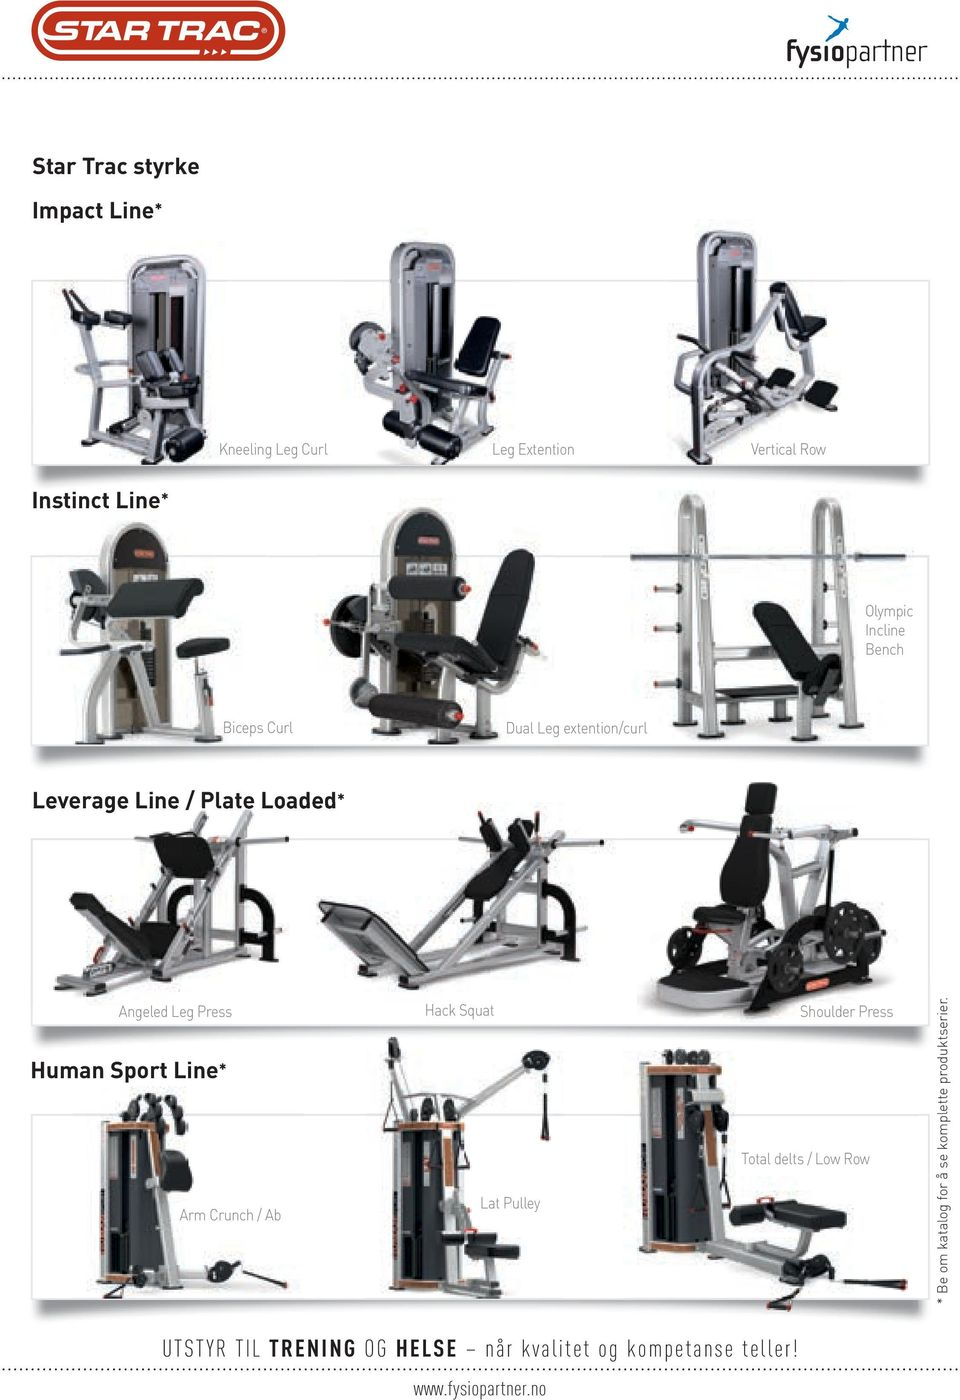 Plate Loaded* Angeled Leg Press Human Sport Line* Arm Crunch / Ab Hack Squat Lat